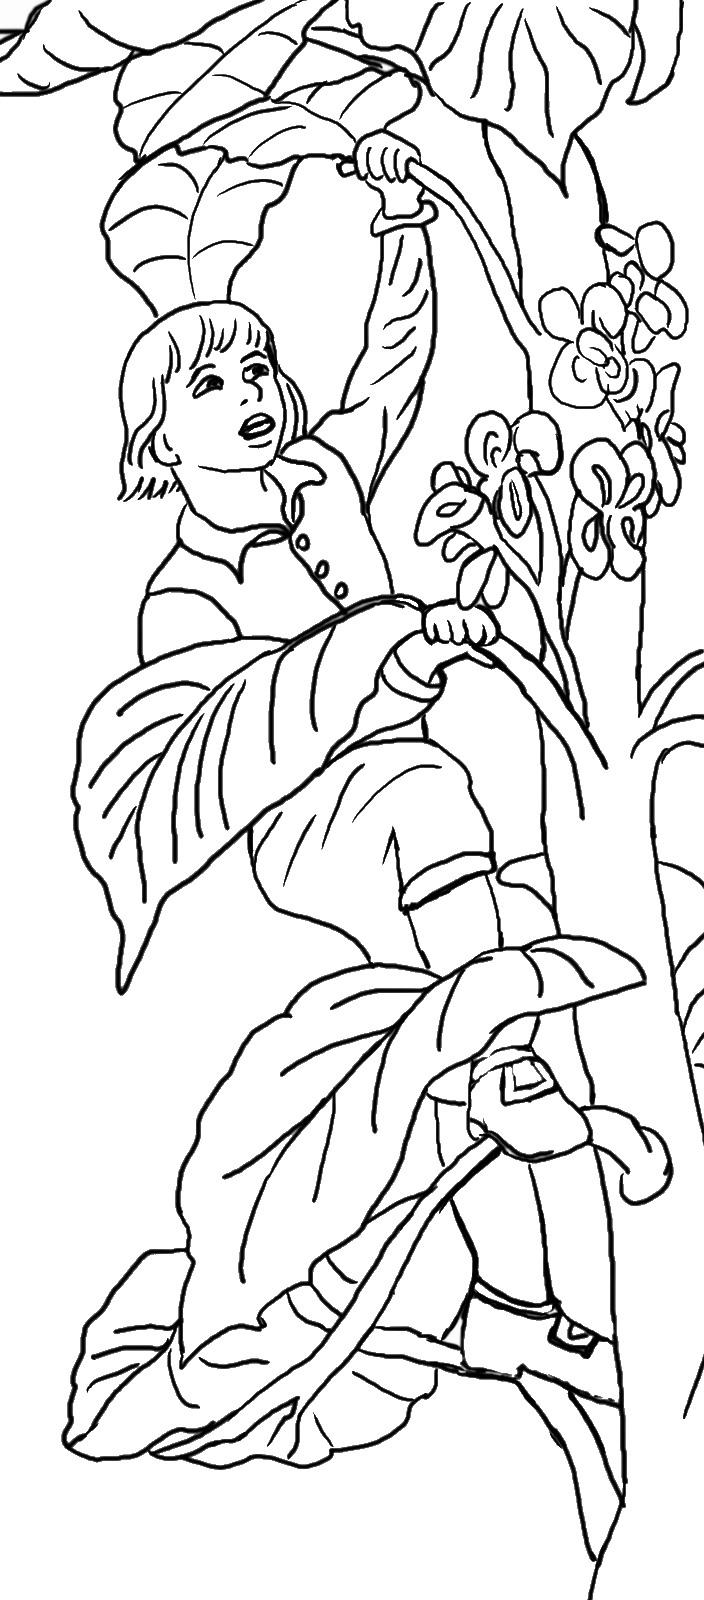 jack and the beanstalk colouring pictures jack and the beanstalk coloring pages coloring home colouring the and jack beanstalk pictures